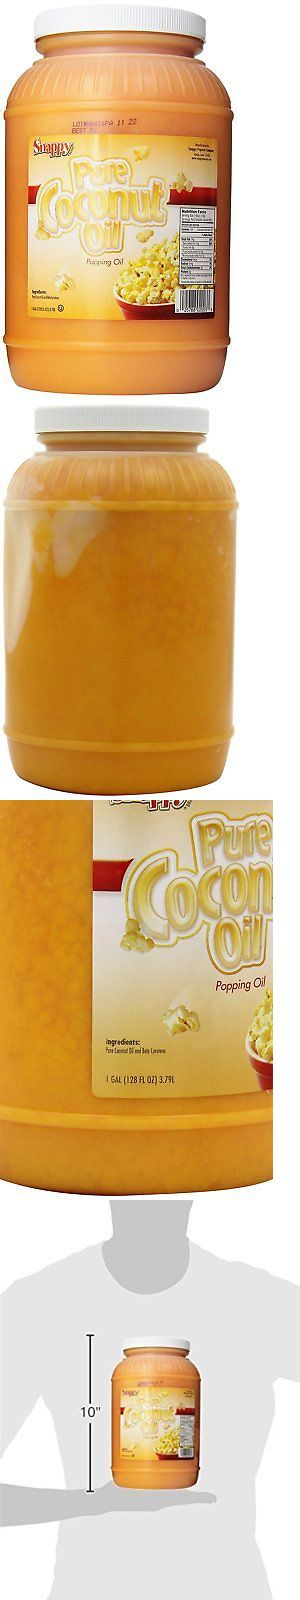 Popcorn 179181: Snappy Popcorn Colored Coconut Oil, 1 Gallon -> BUY IT NOW ONLY: $30.9 on eBay!